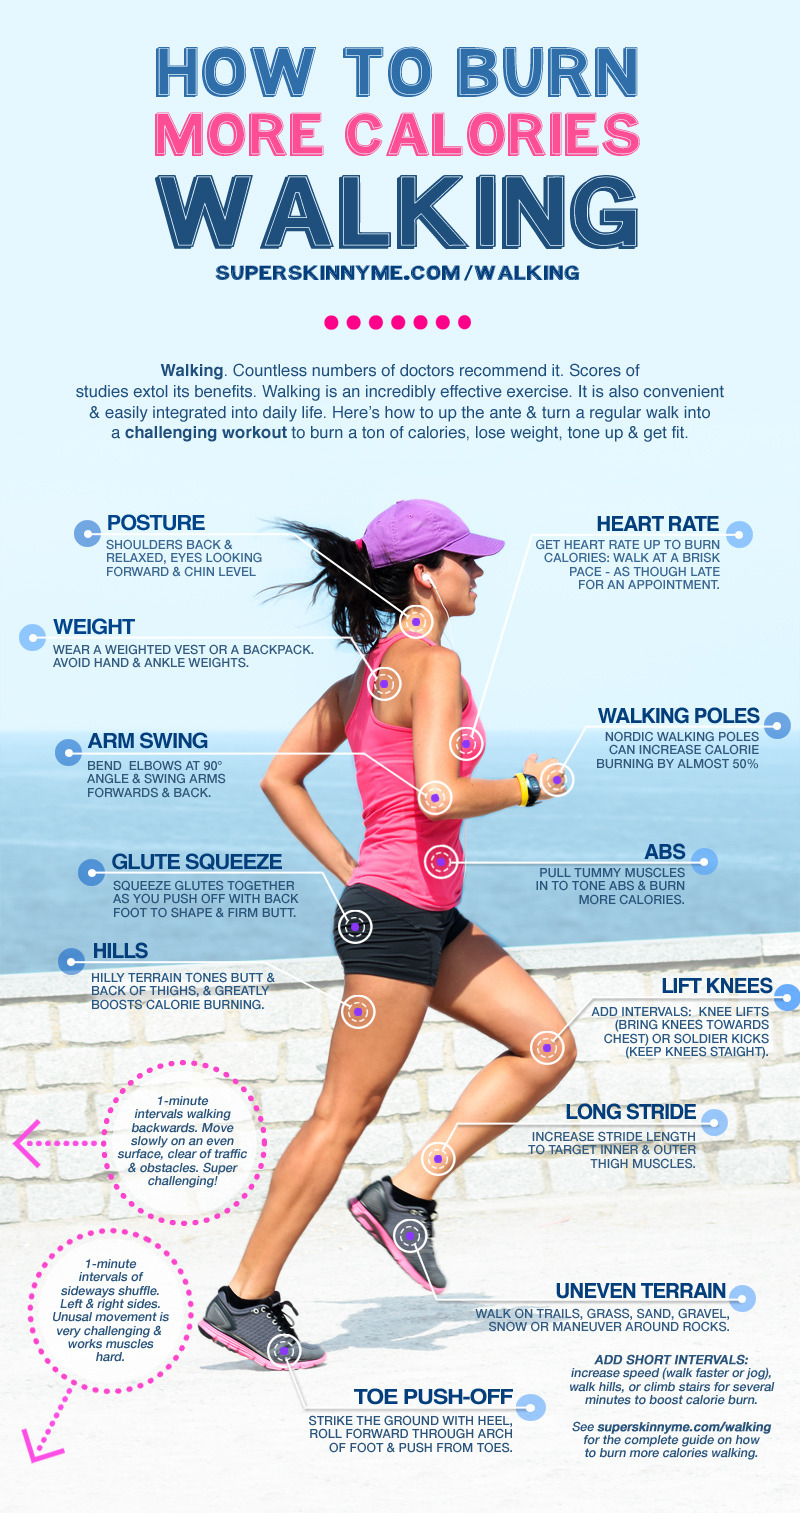 ifonlyhealthier:  eatcleanmakechanges:   the great walk/run debate   Awesome tips!